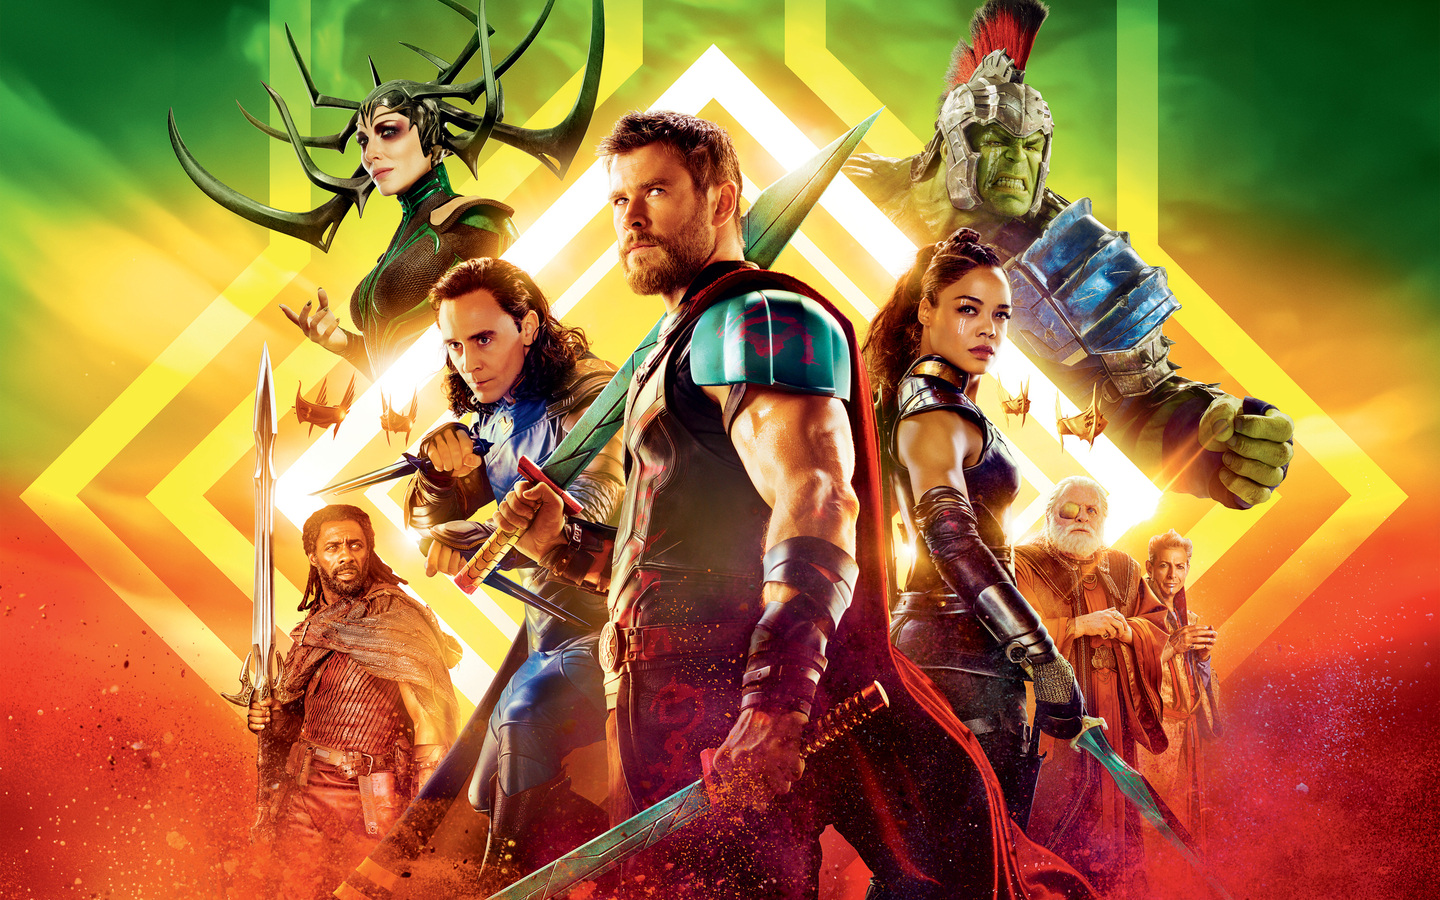 1440x900 4k thor ragnarok 1440x900 resolution hd 4k wallpapers